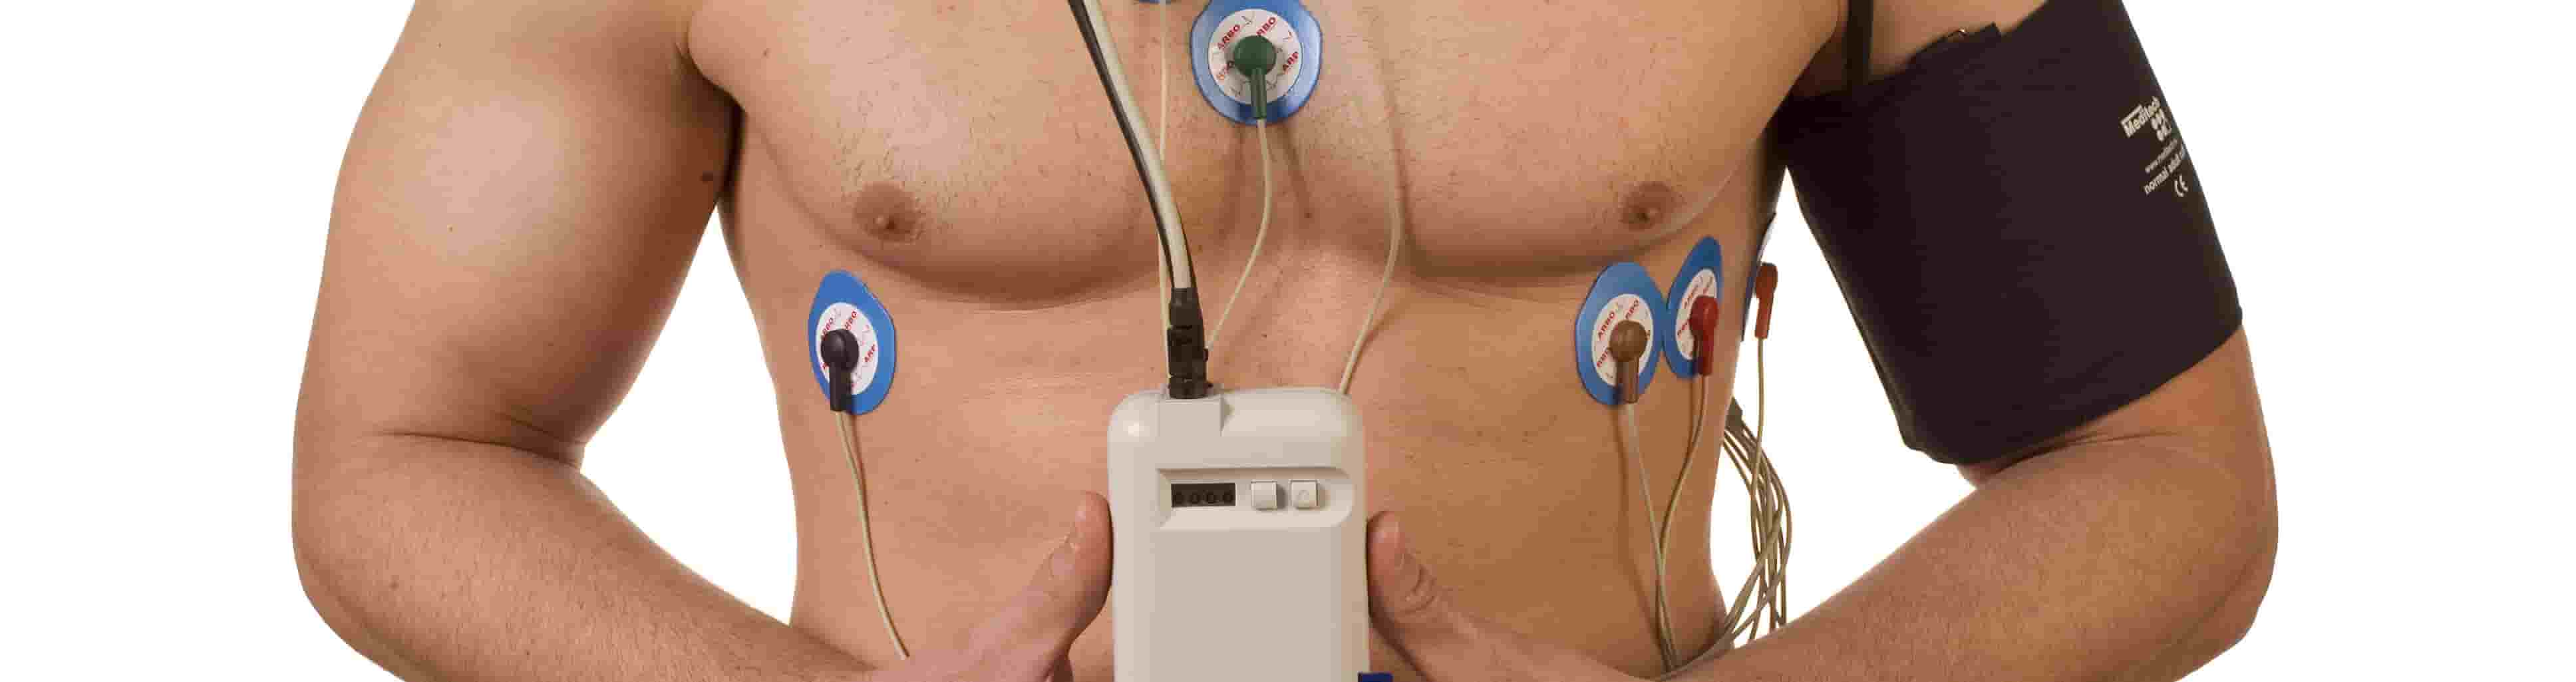 Holter Cardiaco Firenze